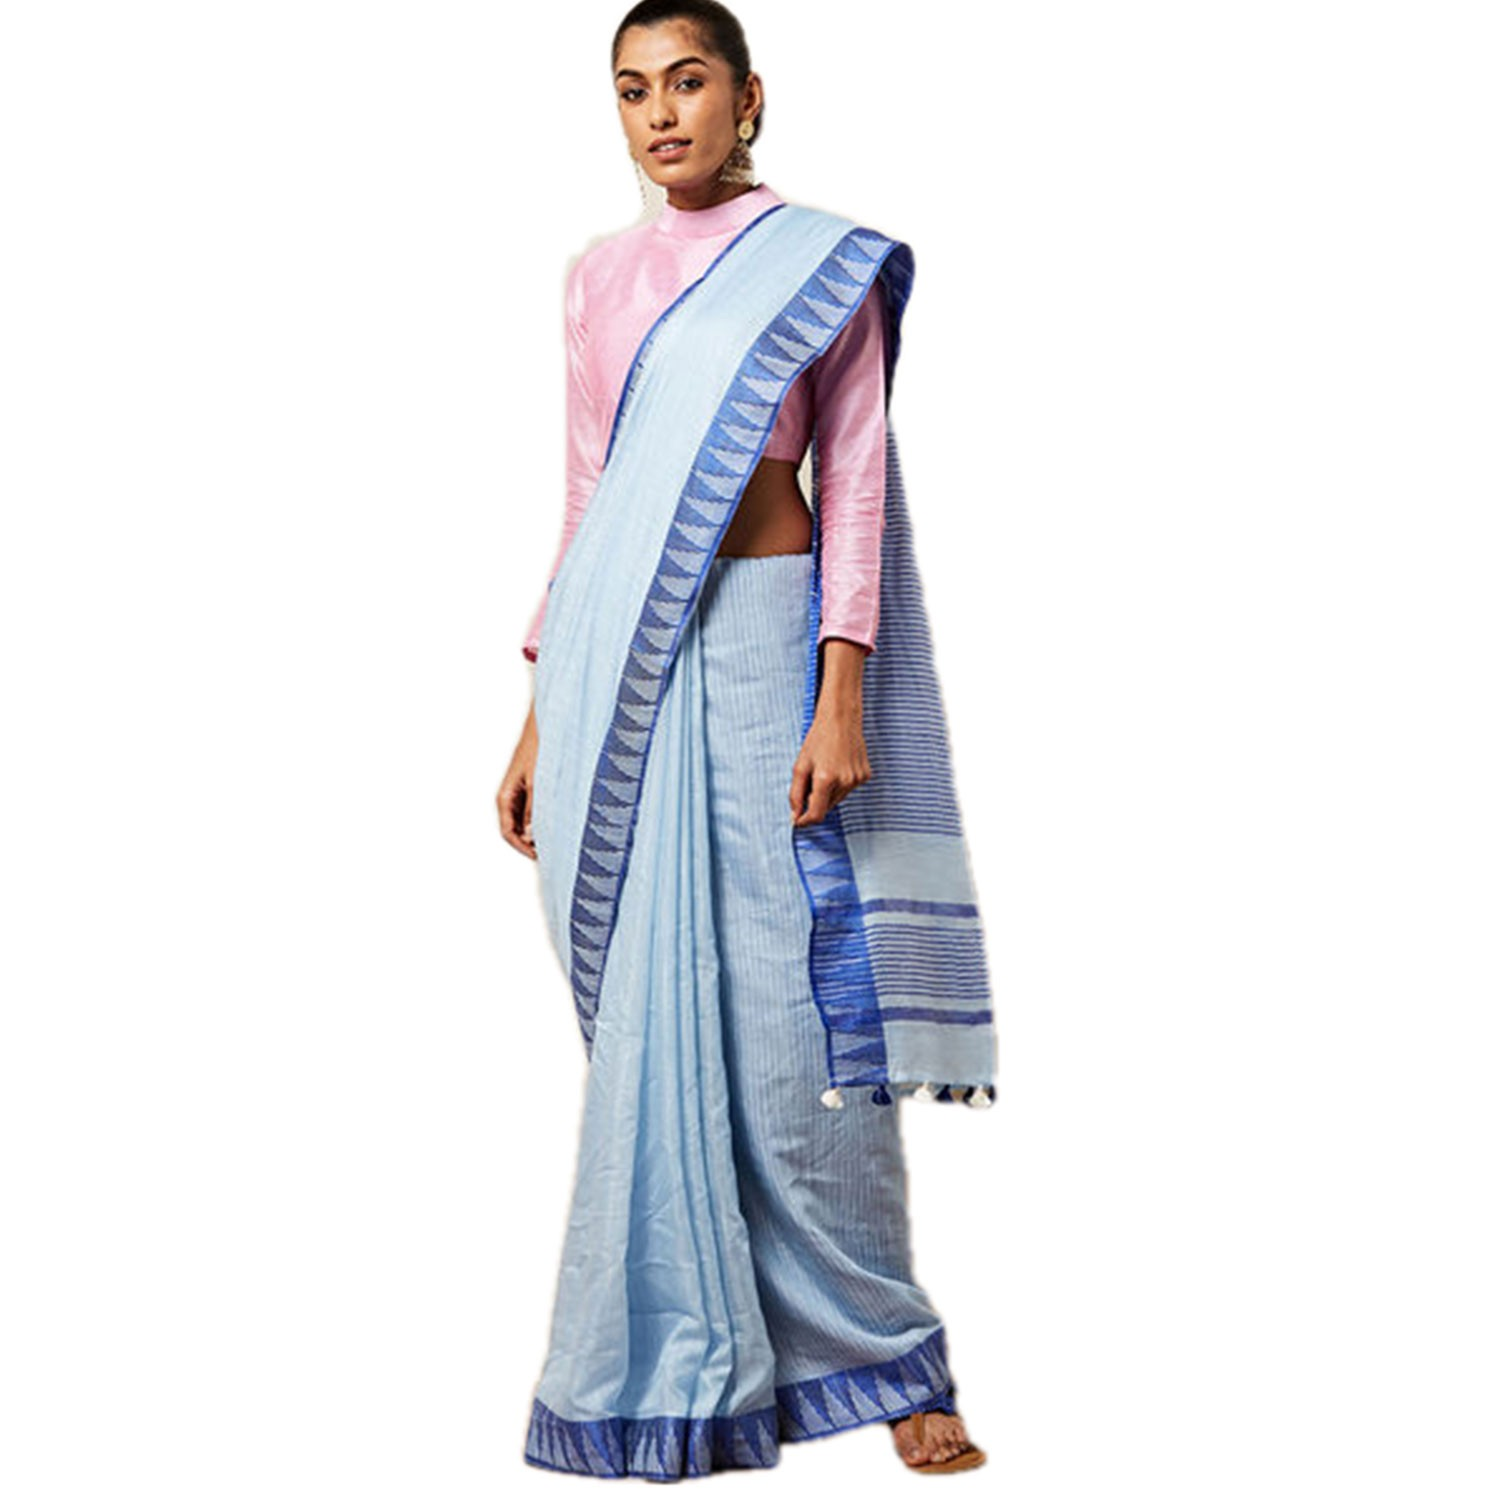 Ethnic Indian Women's Bhagalpuri Handloom Kota silk Saree with contrast temple border and tussels (Sky Blue)